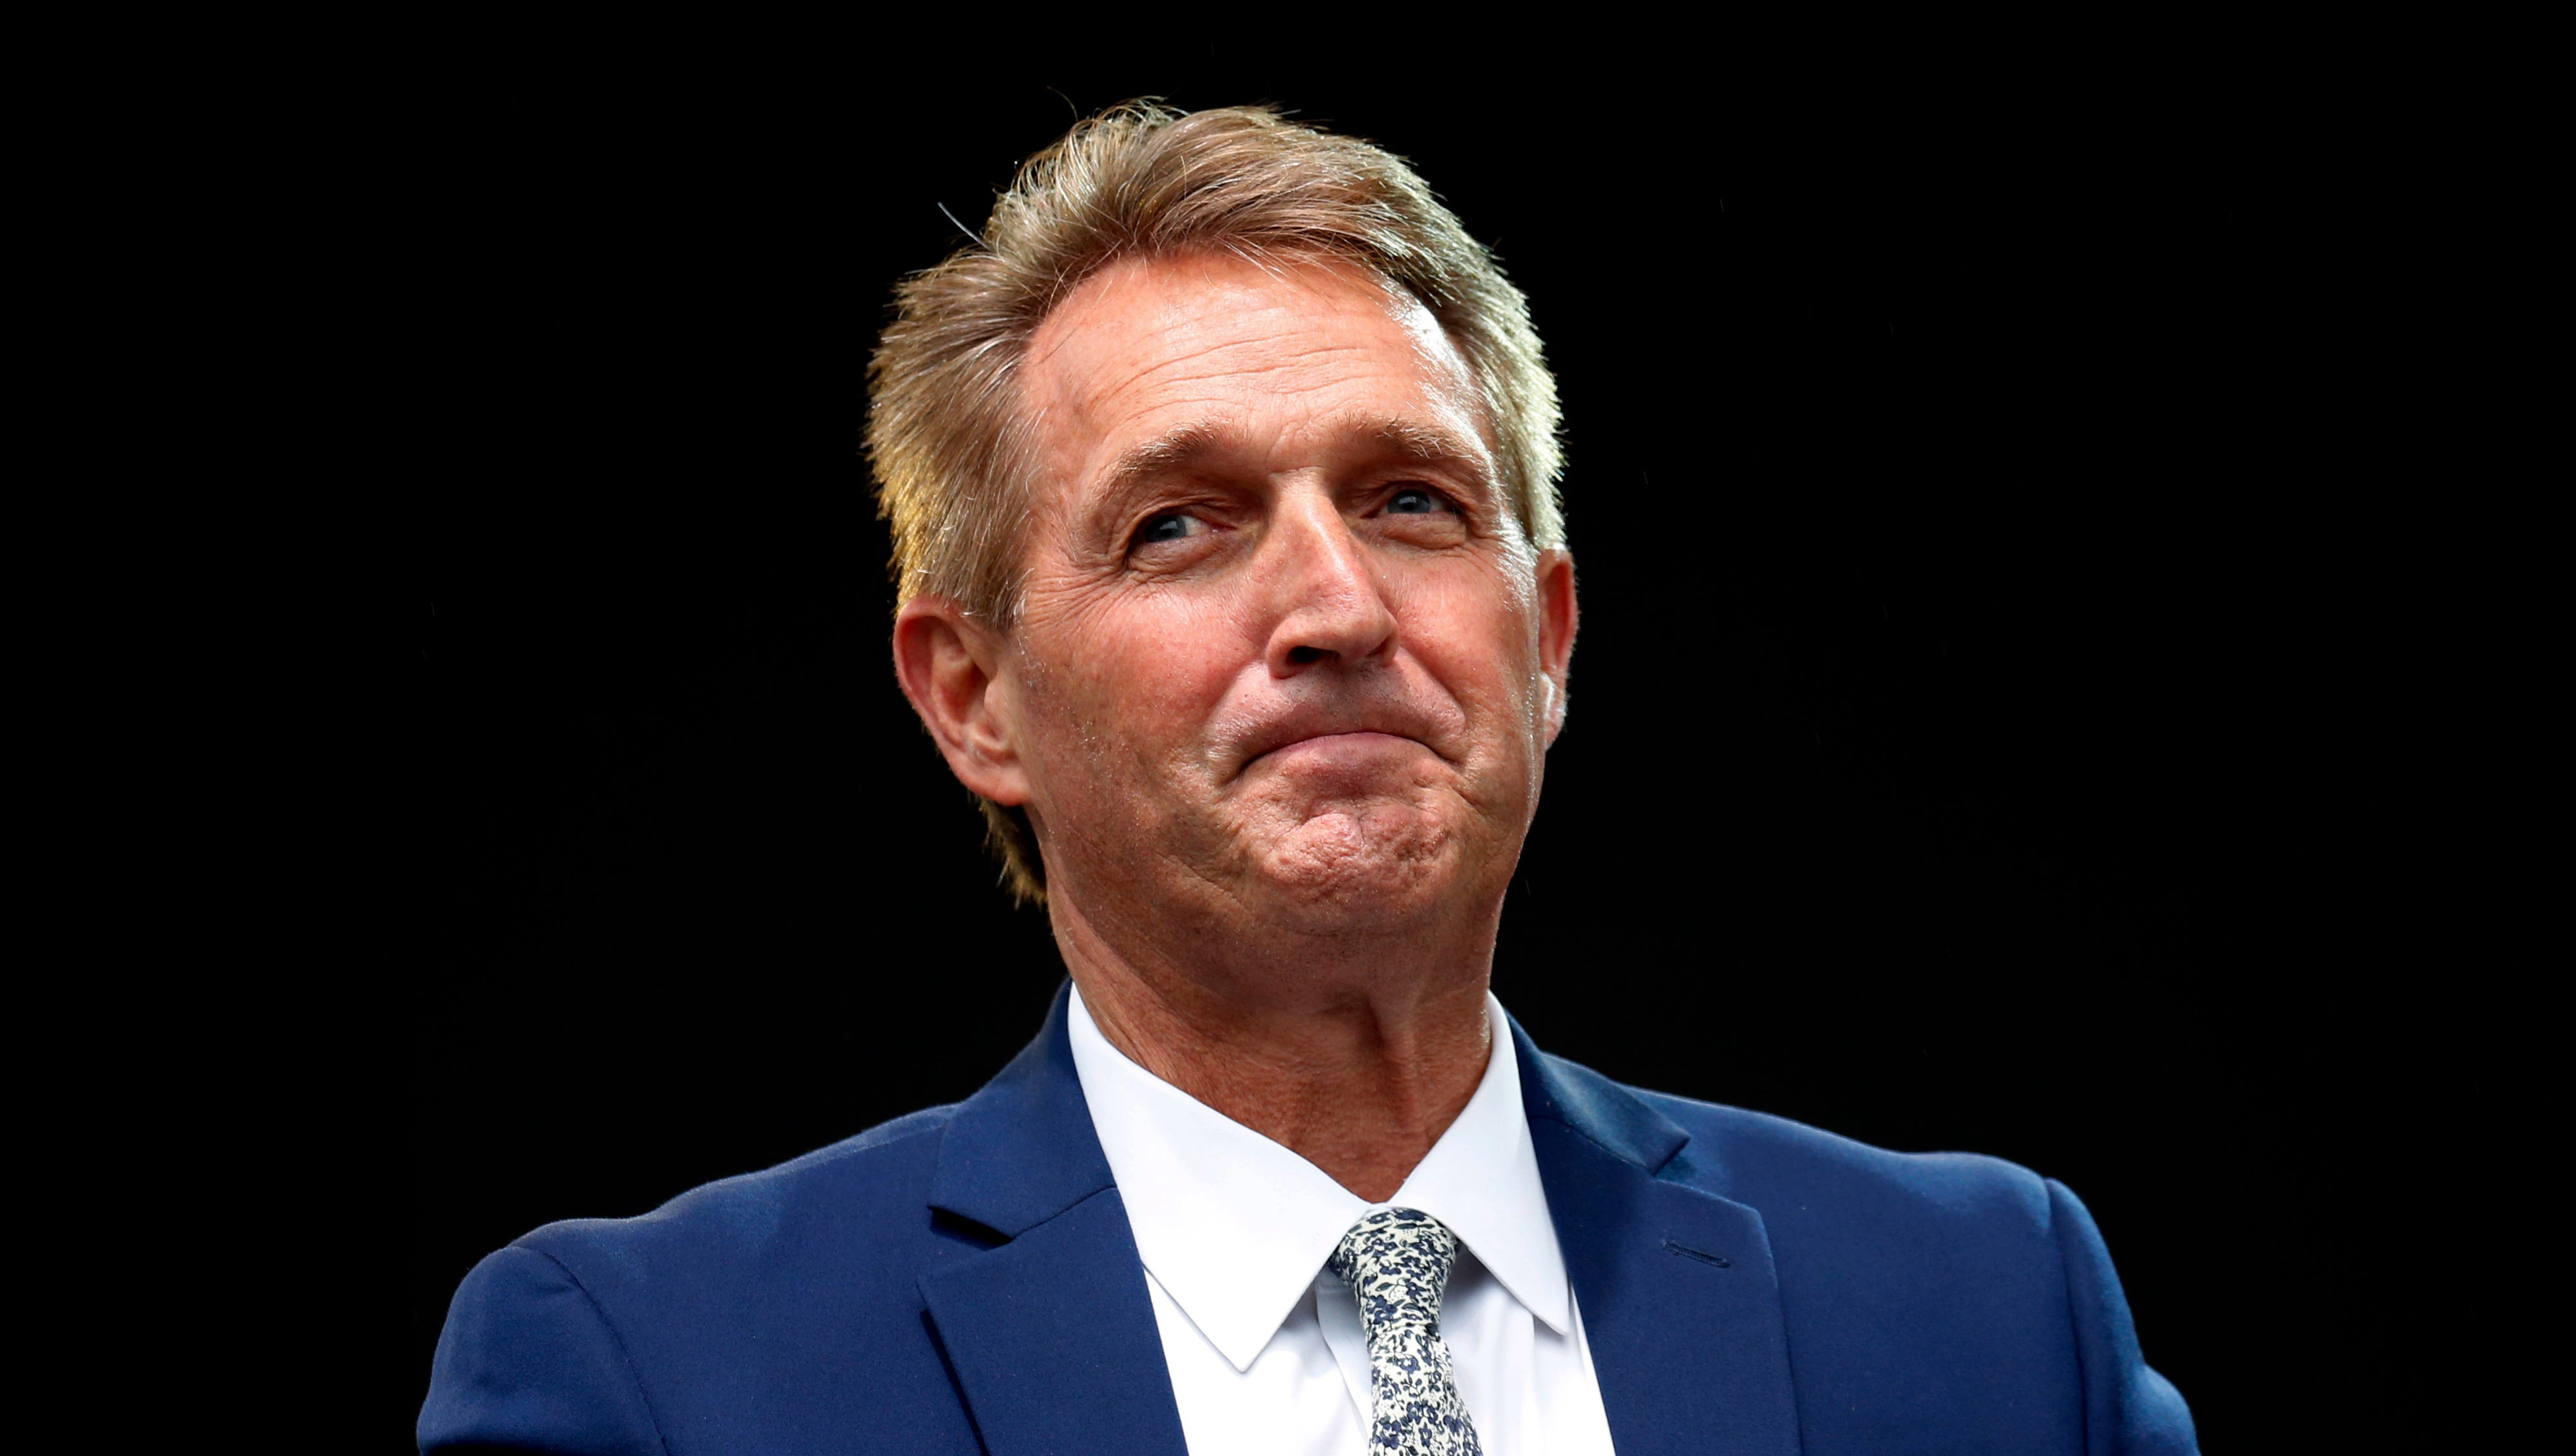 Man pleads guilty to threatening former Arizona Sen. Jeff Flake and his family